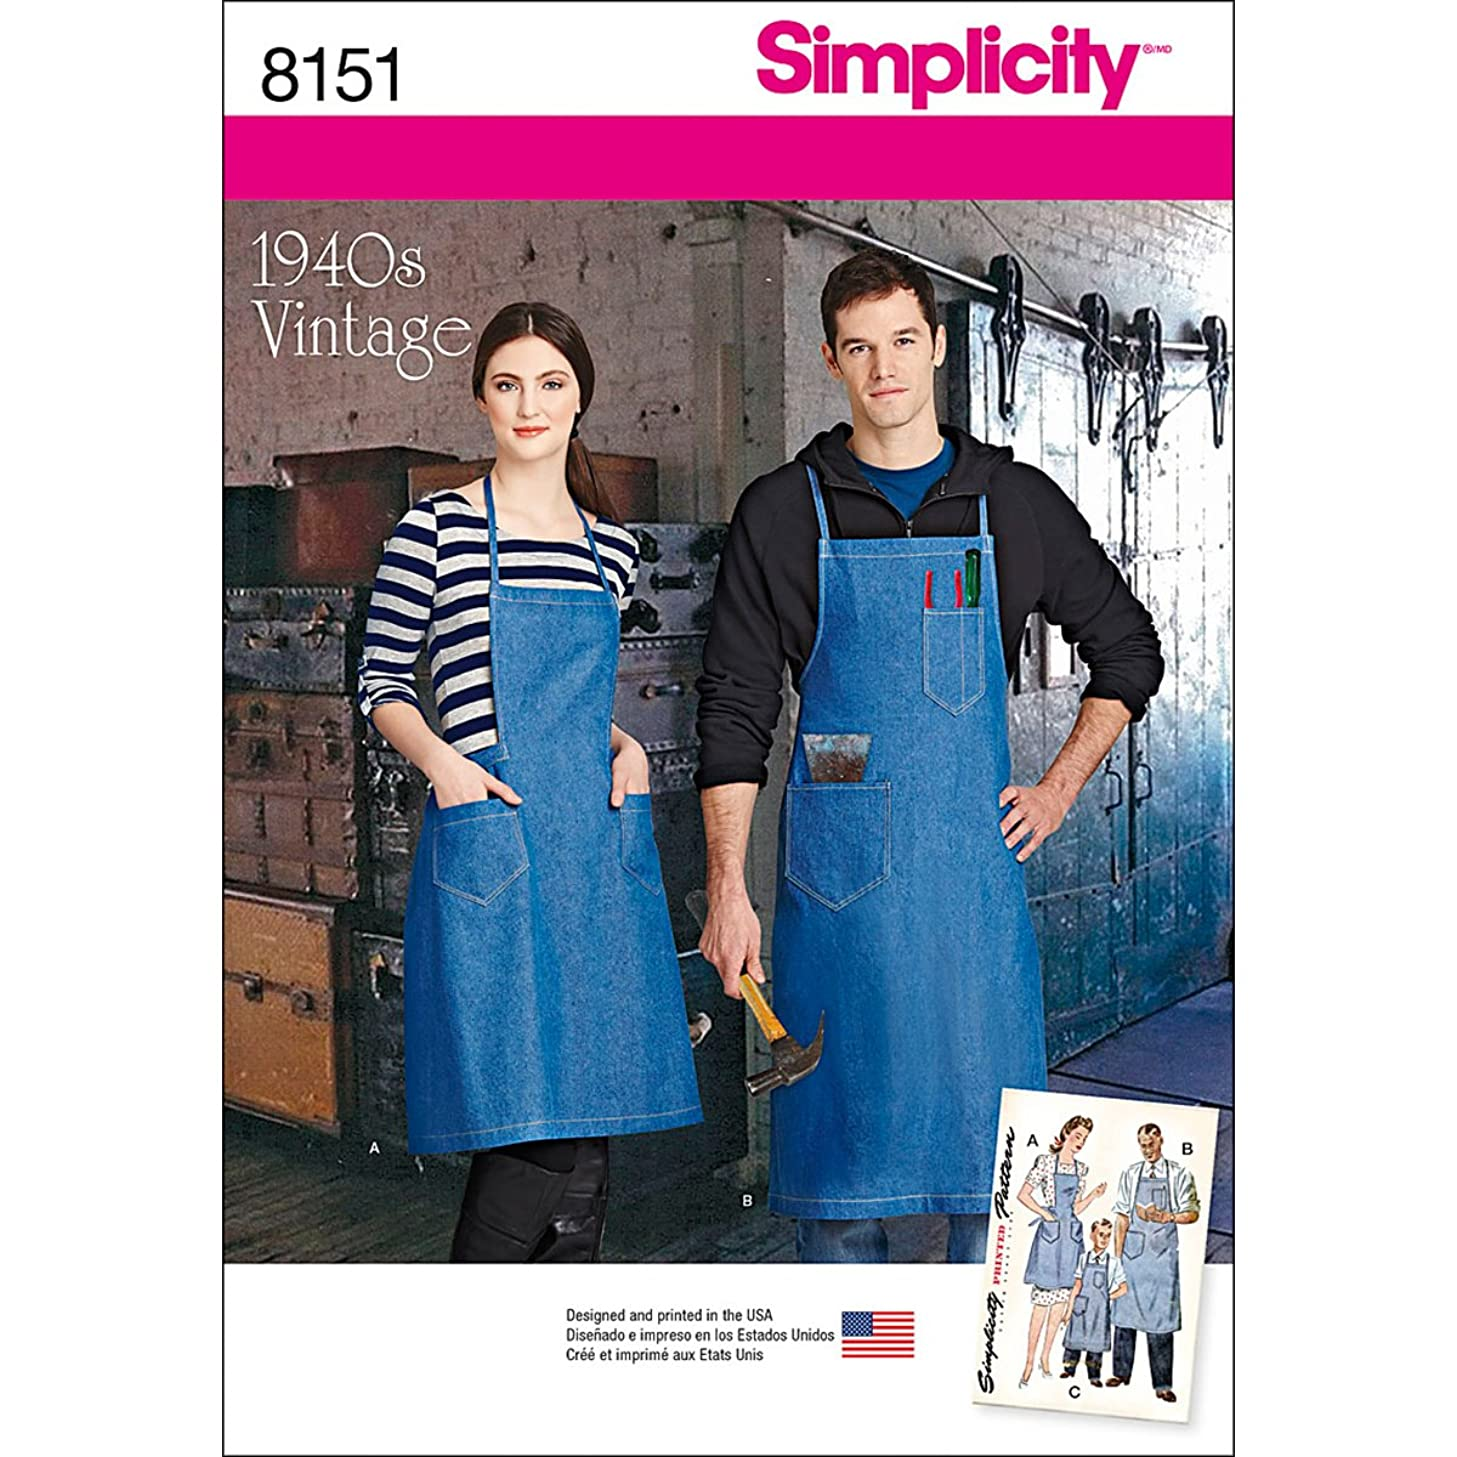 Simplicity Creative Patterns Simplicity Pattern 8151 Vintage Aprons for Boys, Girls, Misses and Men, Size: A